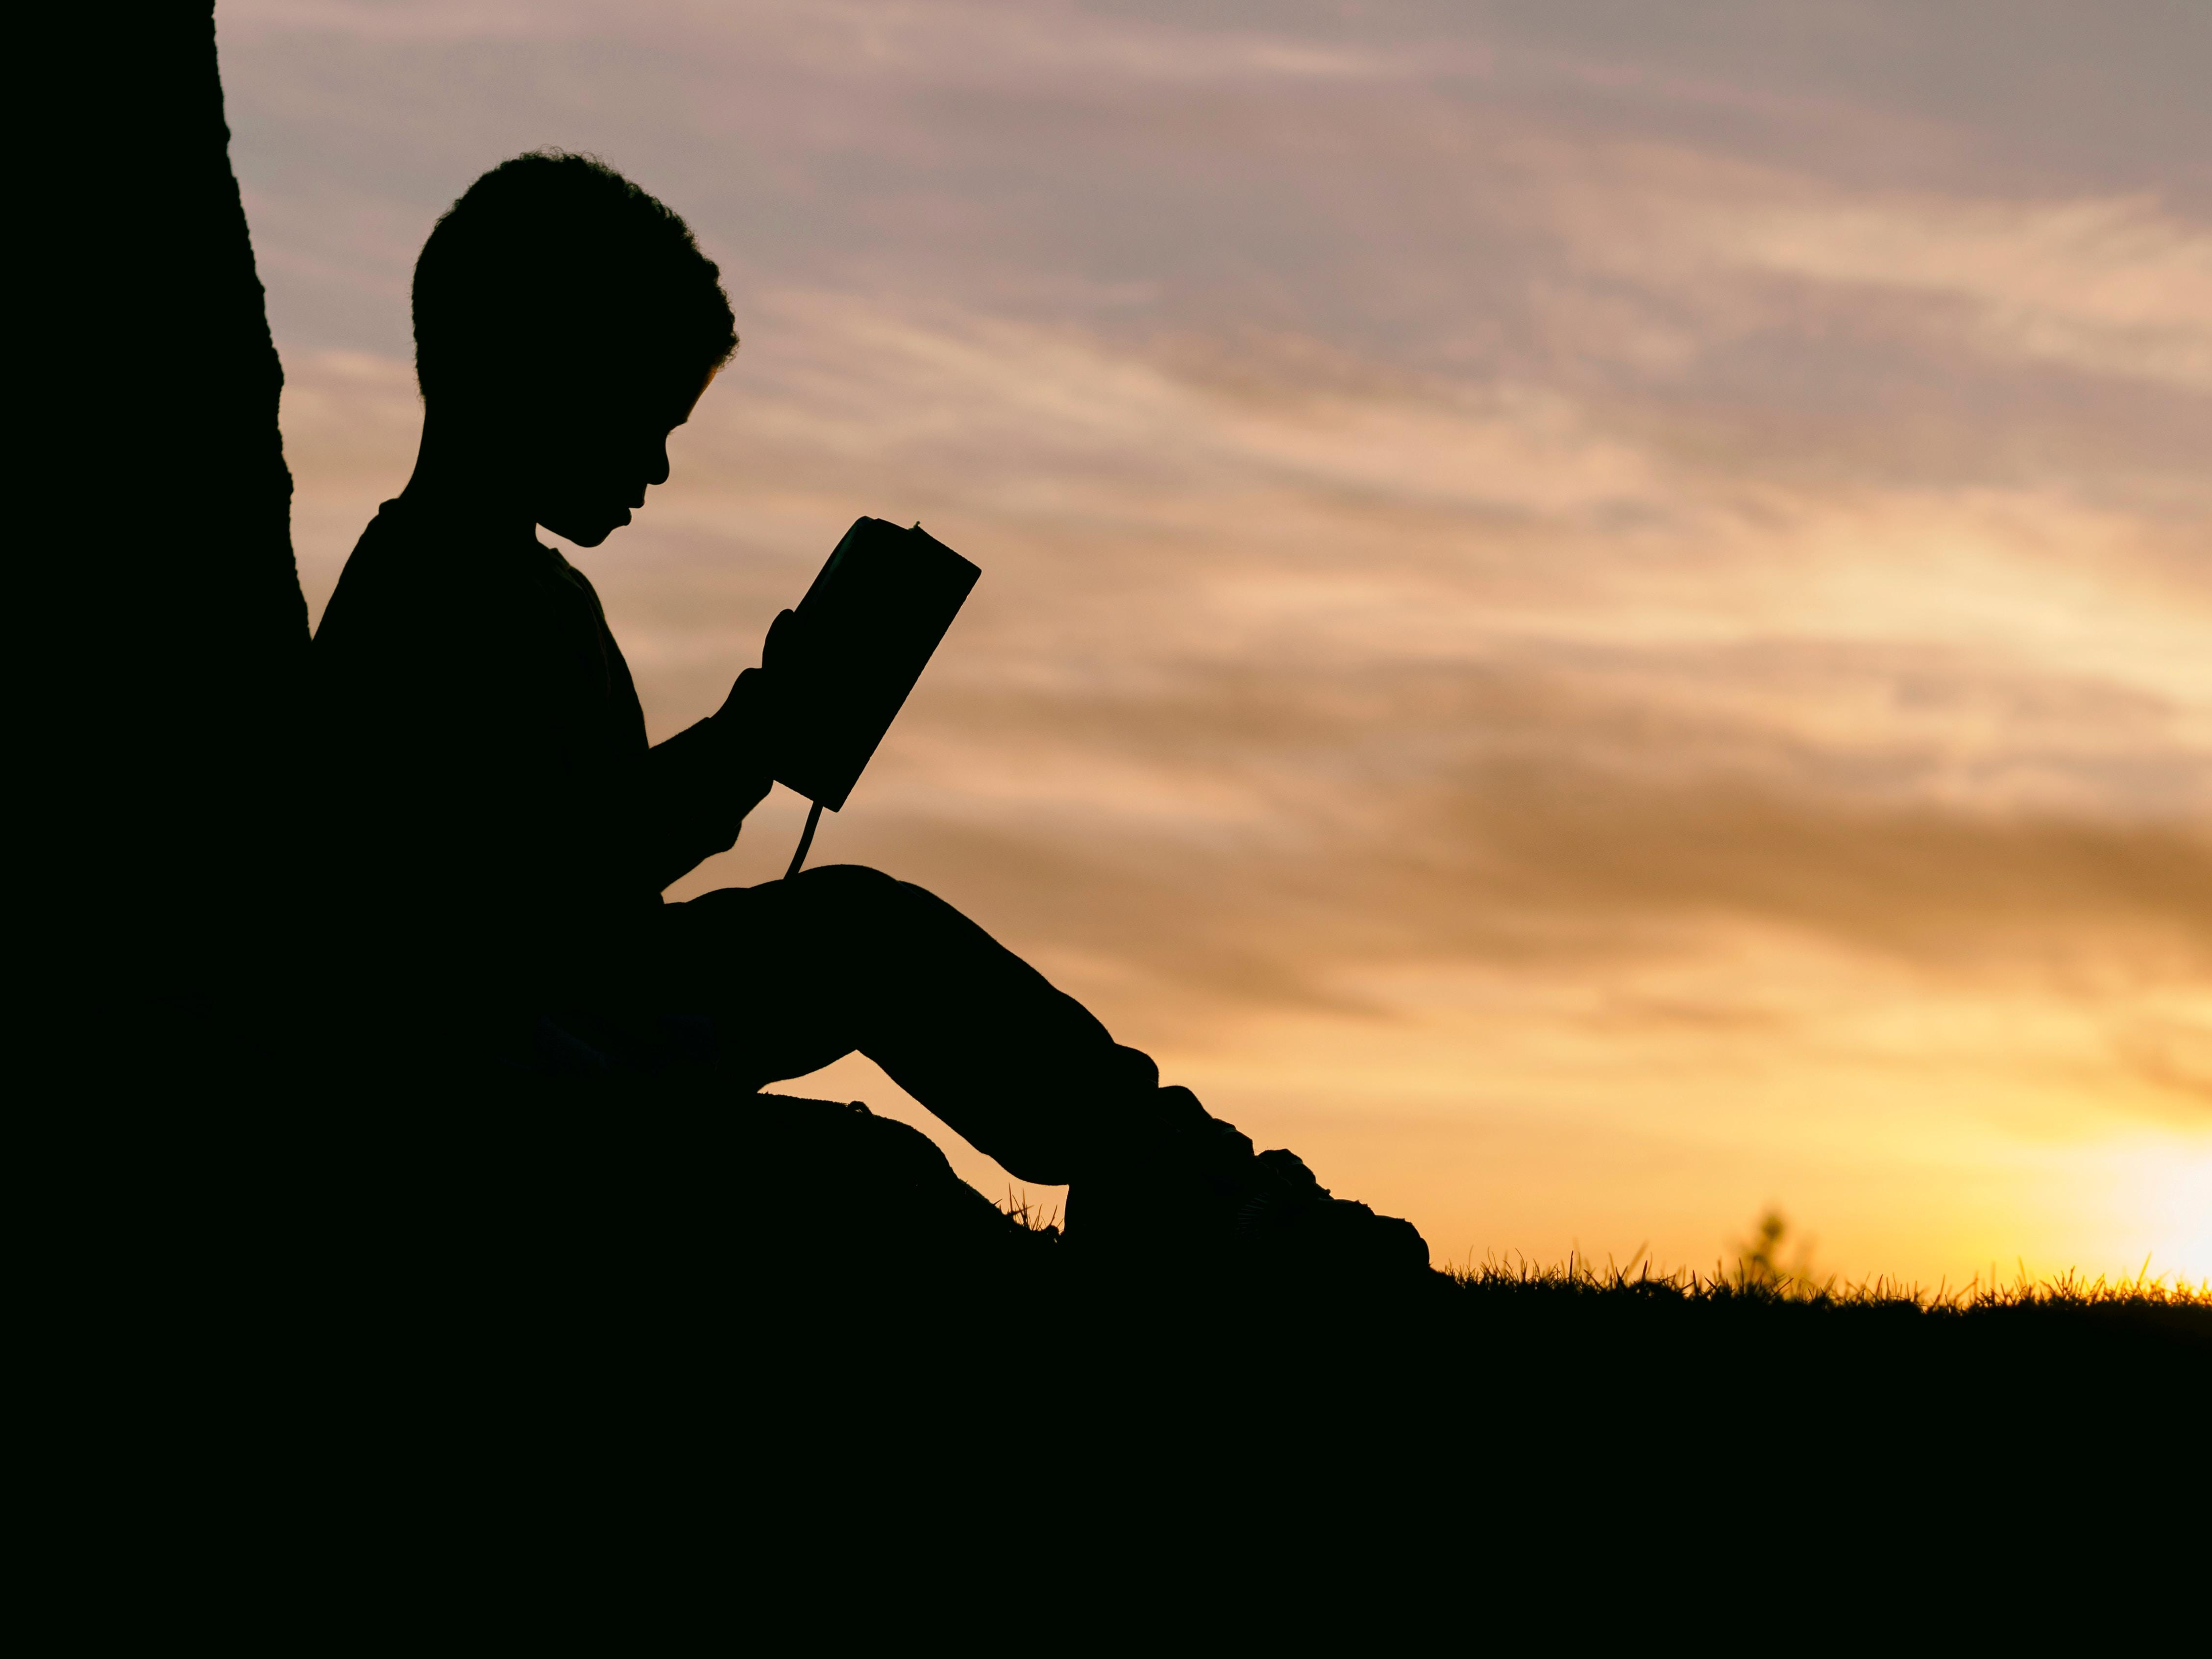 Silhouette of child reading a book outdoors. Photo by Aaron Burden, Unsplash.